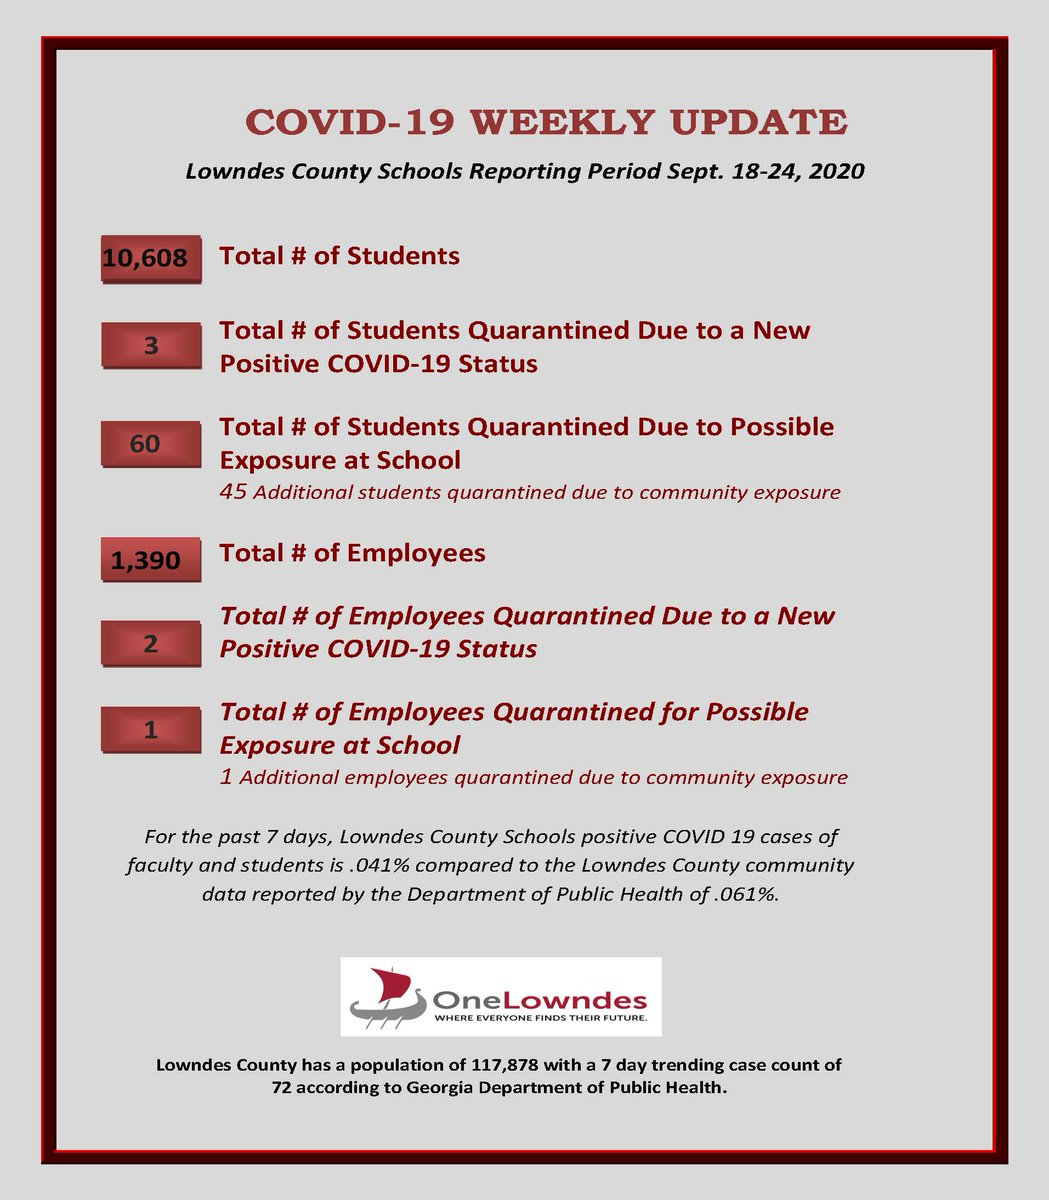 9-25-2020  - Lowndes County Schools' weekly COVID 19 update, based on what is reported to us. These numbers are in a trending 7-day format using comparative data from DPH. This report represents data from September 18-24, 2020.  #OneLowndes